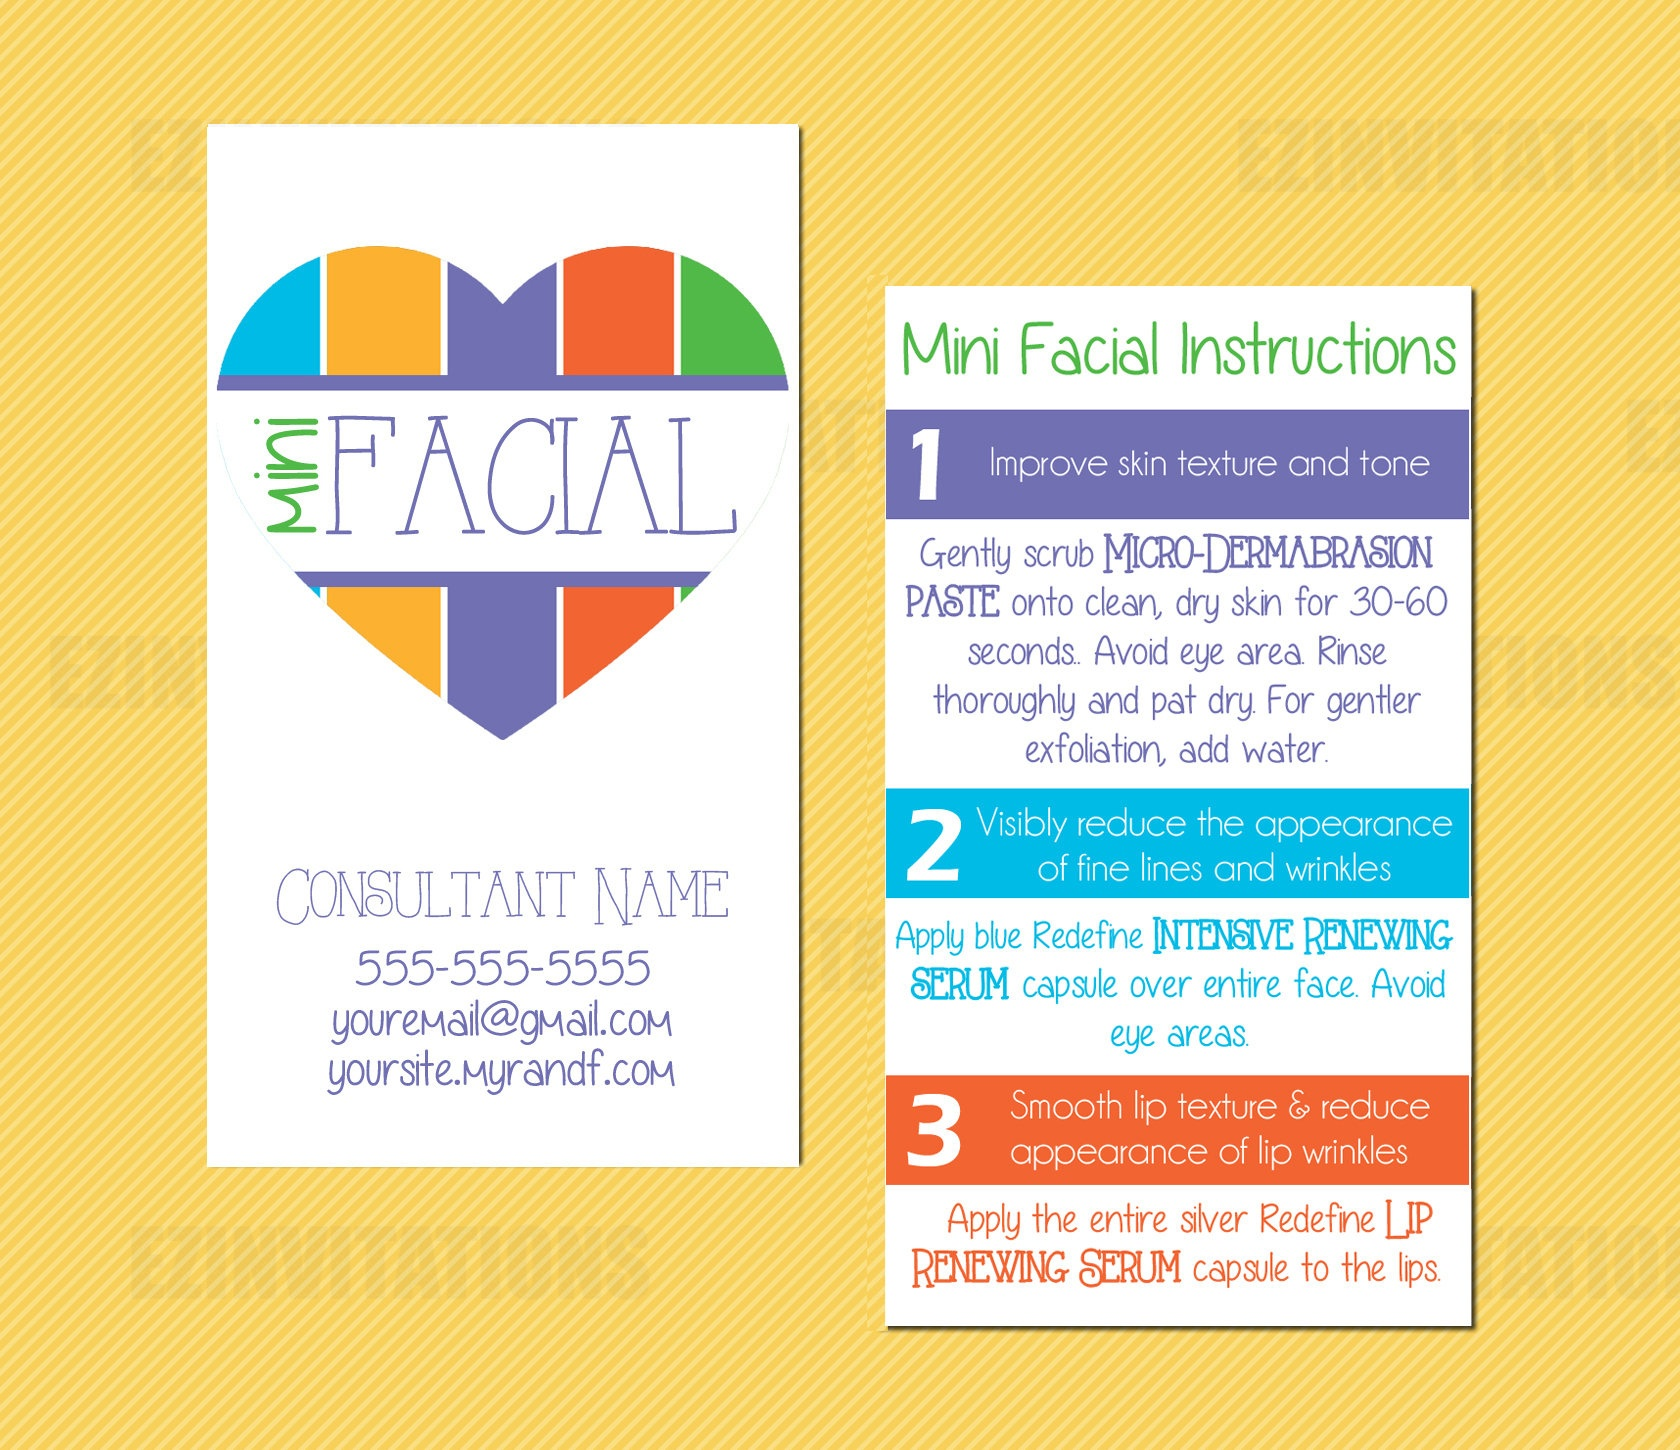 Rodan And Fields Mini Facial Card Rf Mini Facial Heart | Etsy - Rodan And Fields Mini Facial Instructions Printable Free